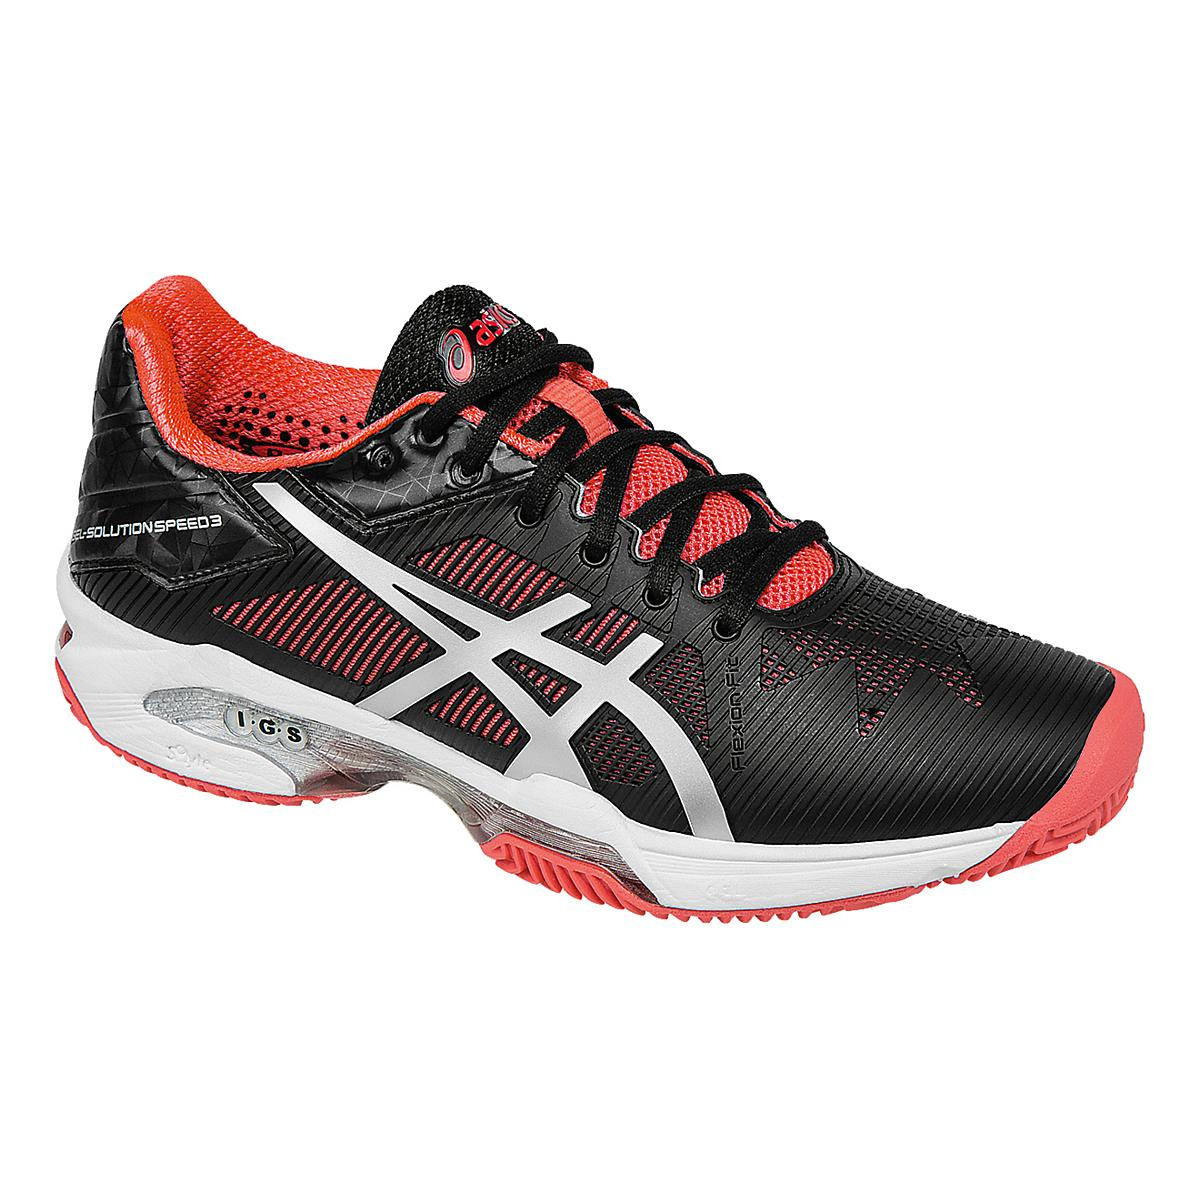 Best Womens Tennis Shoes For Clay Courts